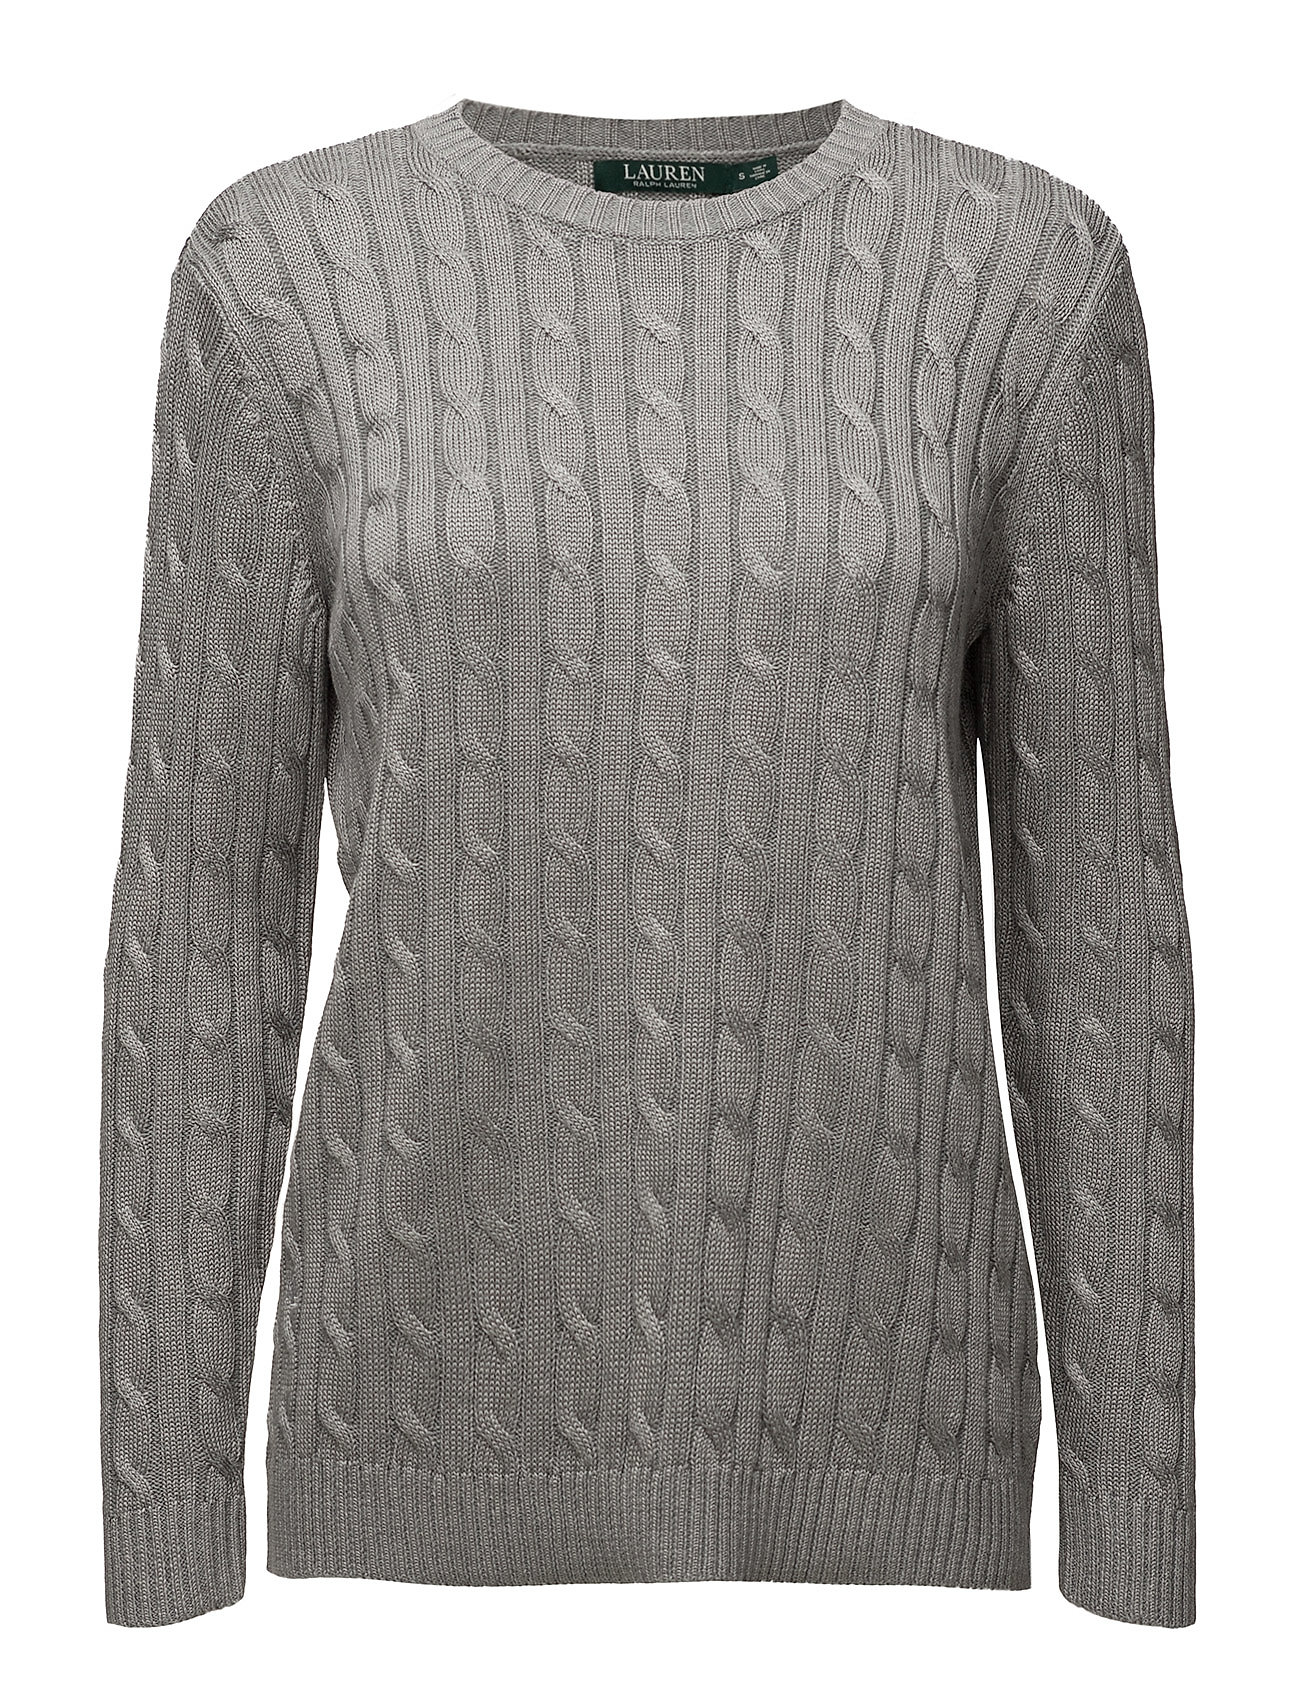 Monogram Cable-knit Sweater (Sterling Grey Hea) (77.35 €) - Lauren ...